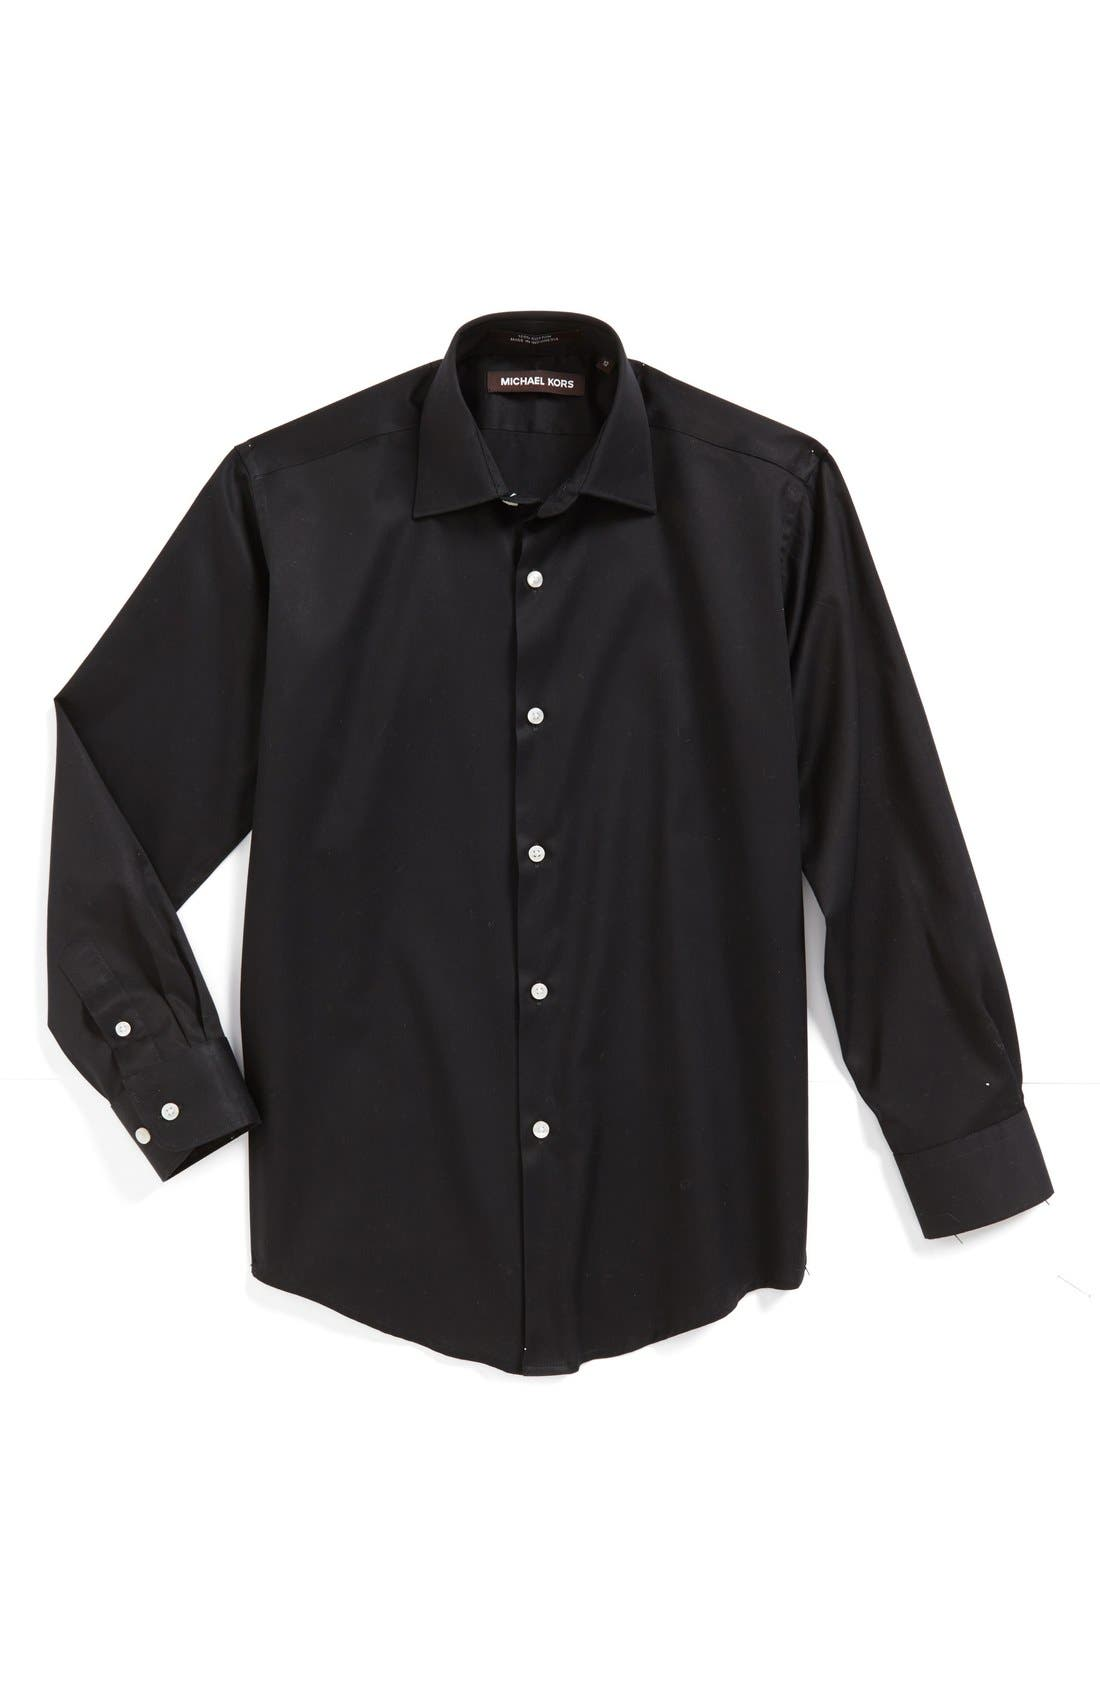 MICHAEL KORS Solid Dress Shirt, Main, color, BLACK